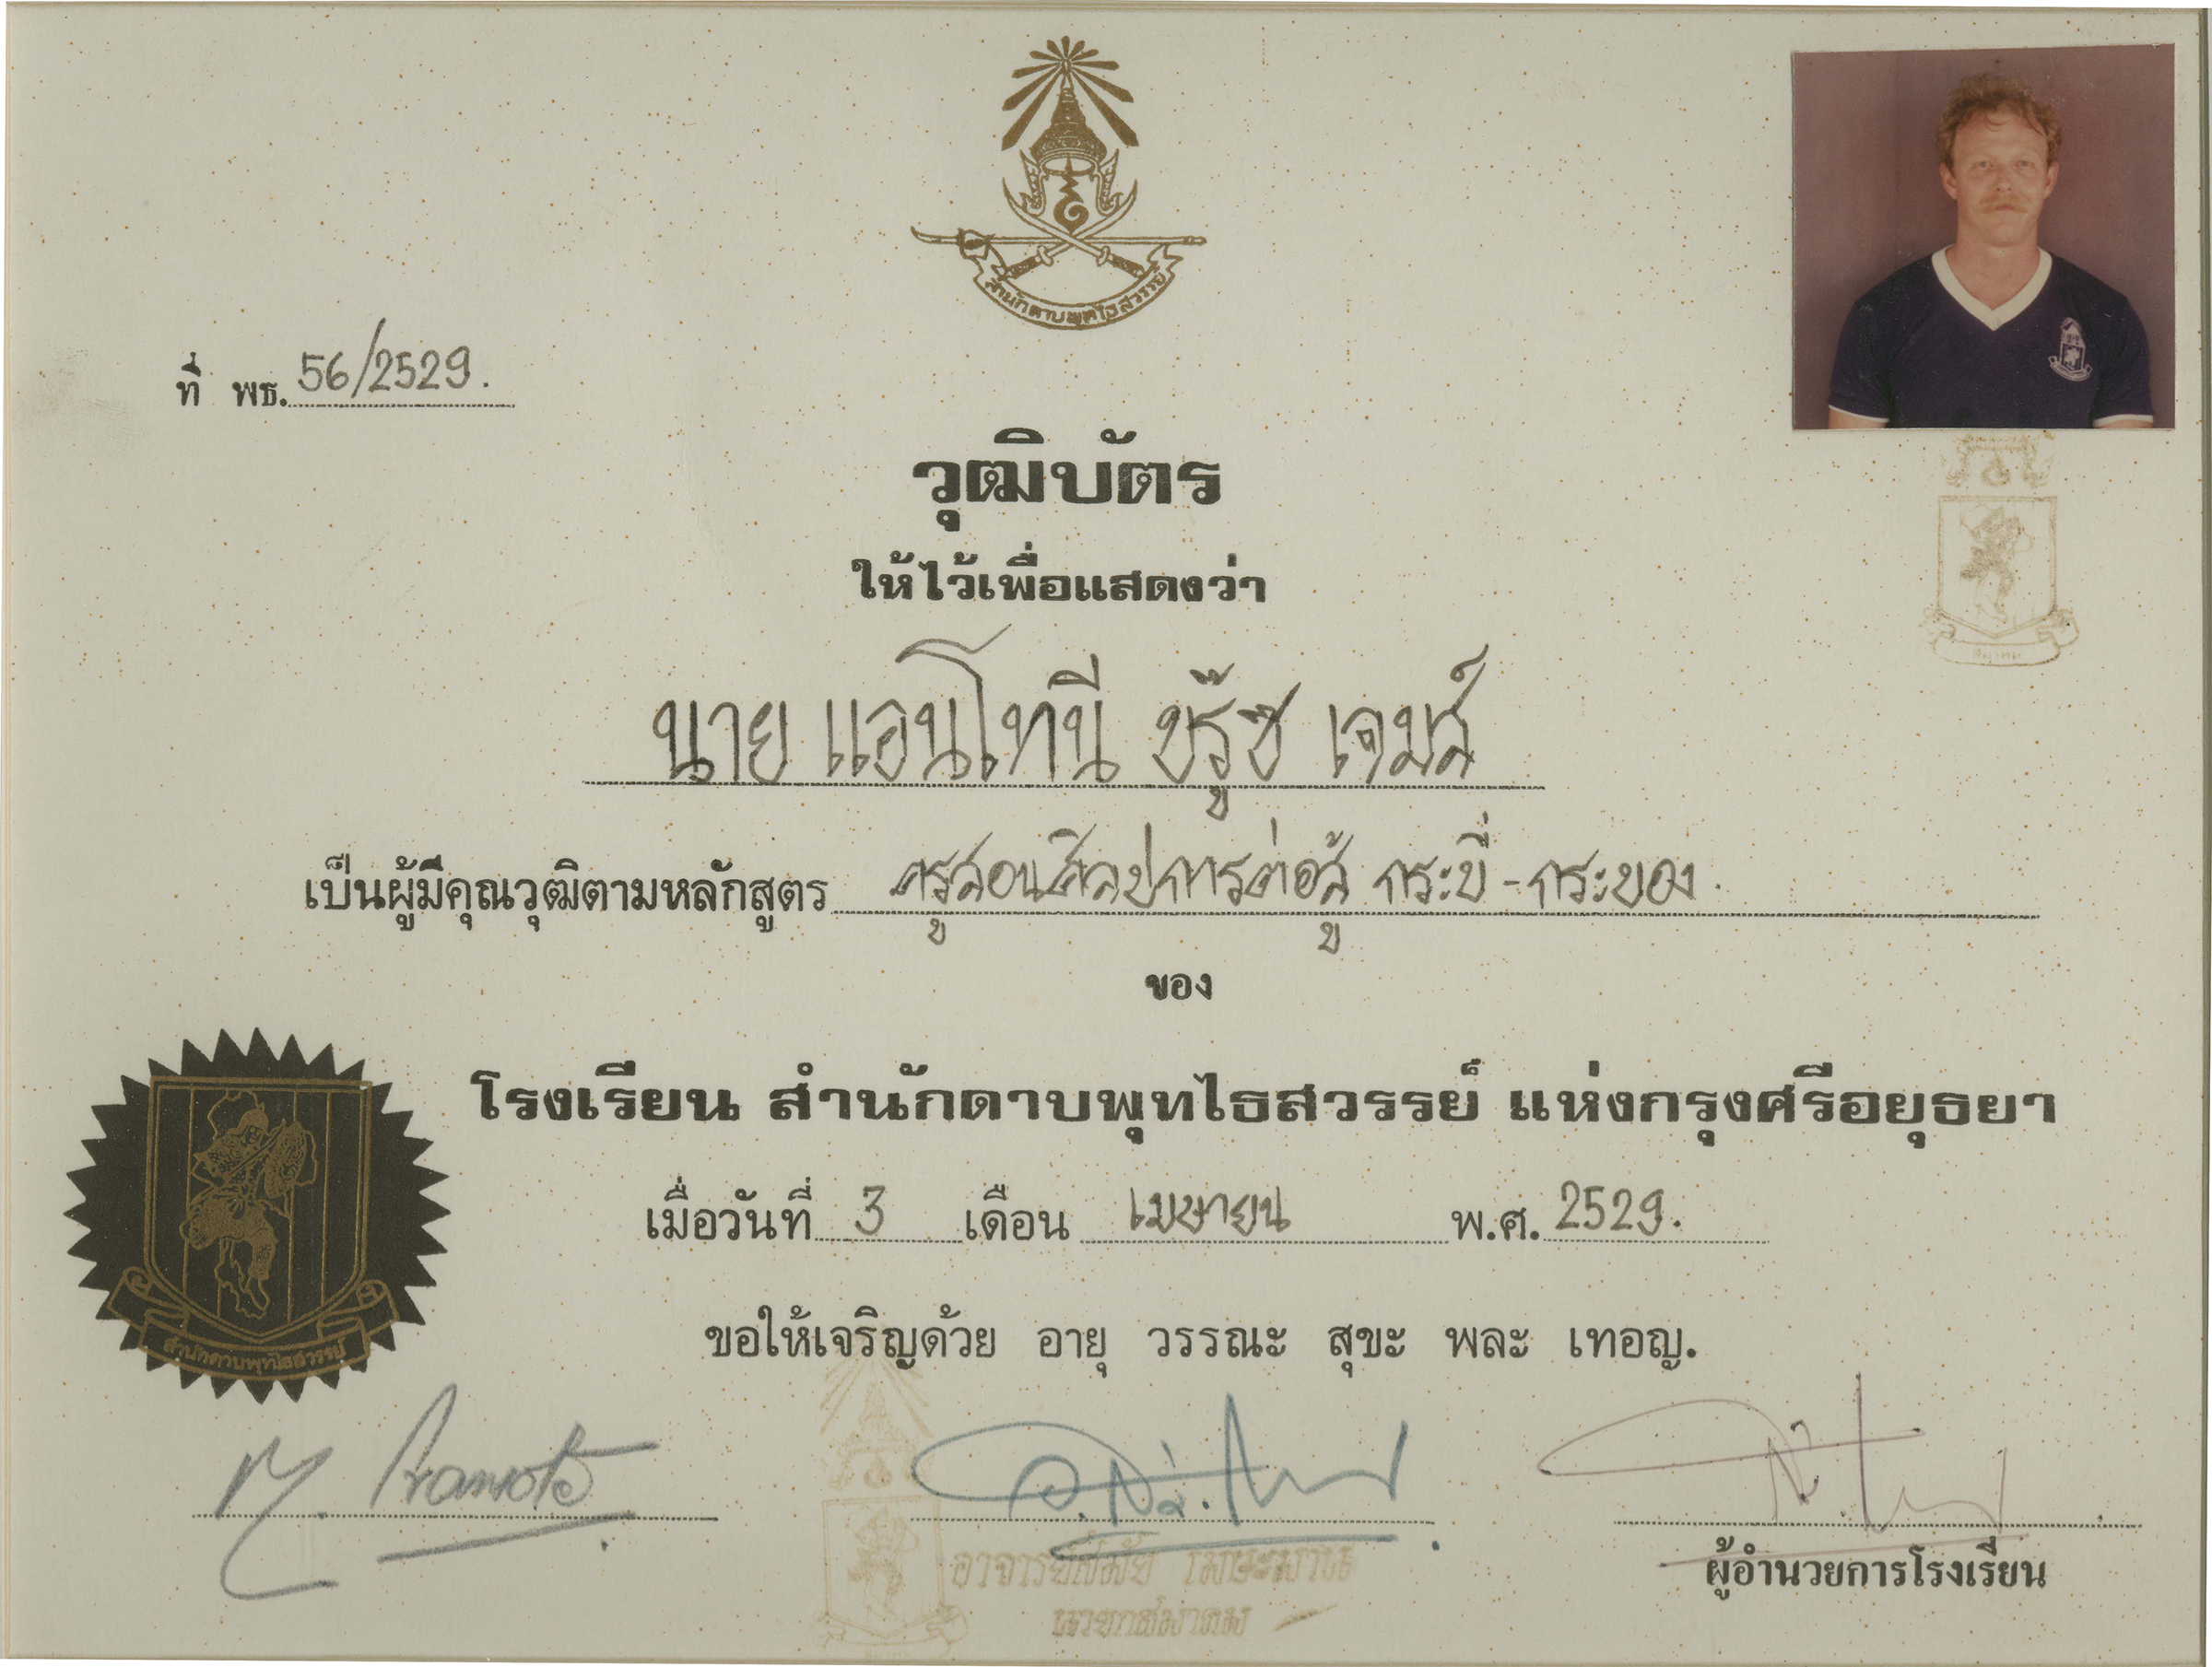 Buddhai Sawan Teacher (Khruu) Certification issued to Dr. Anthony B. James April 1984 by Phaa Khruu Samaii Mesamarn, Nogkam, Thailand